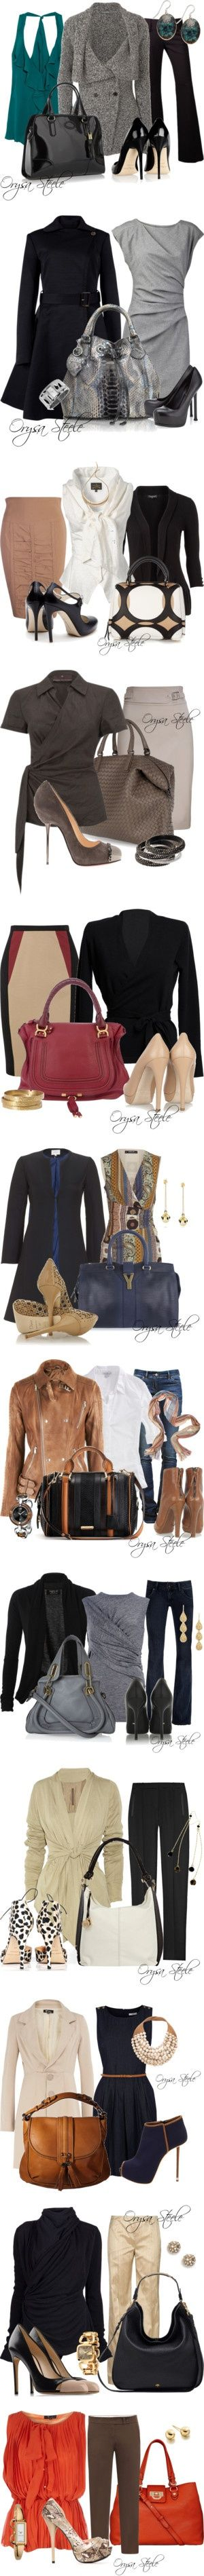 in+style+@+work - Click image to find more Women's Fashion Pinterest pins